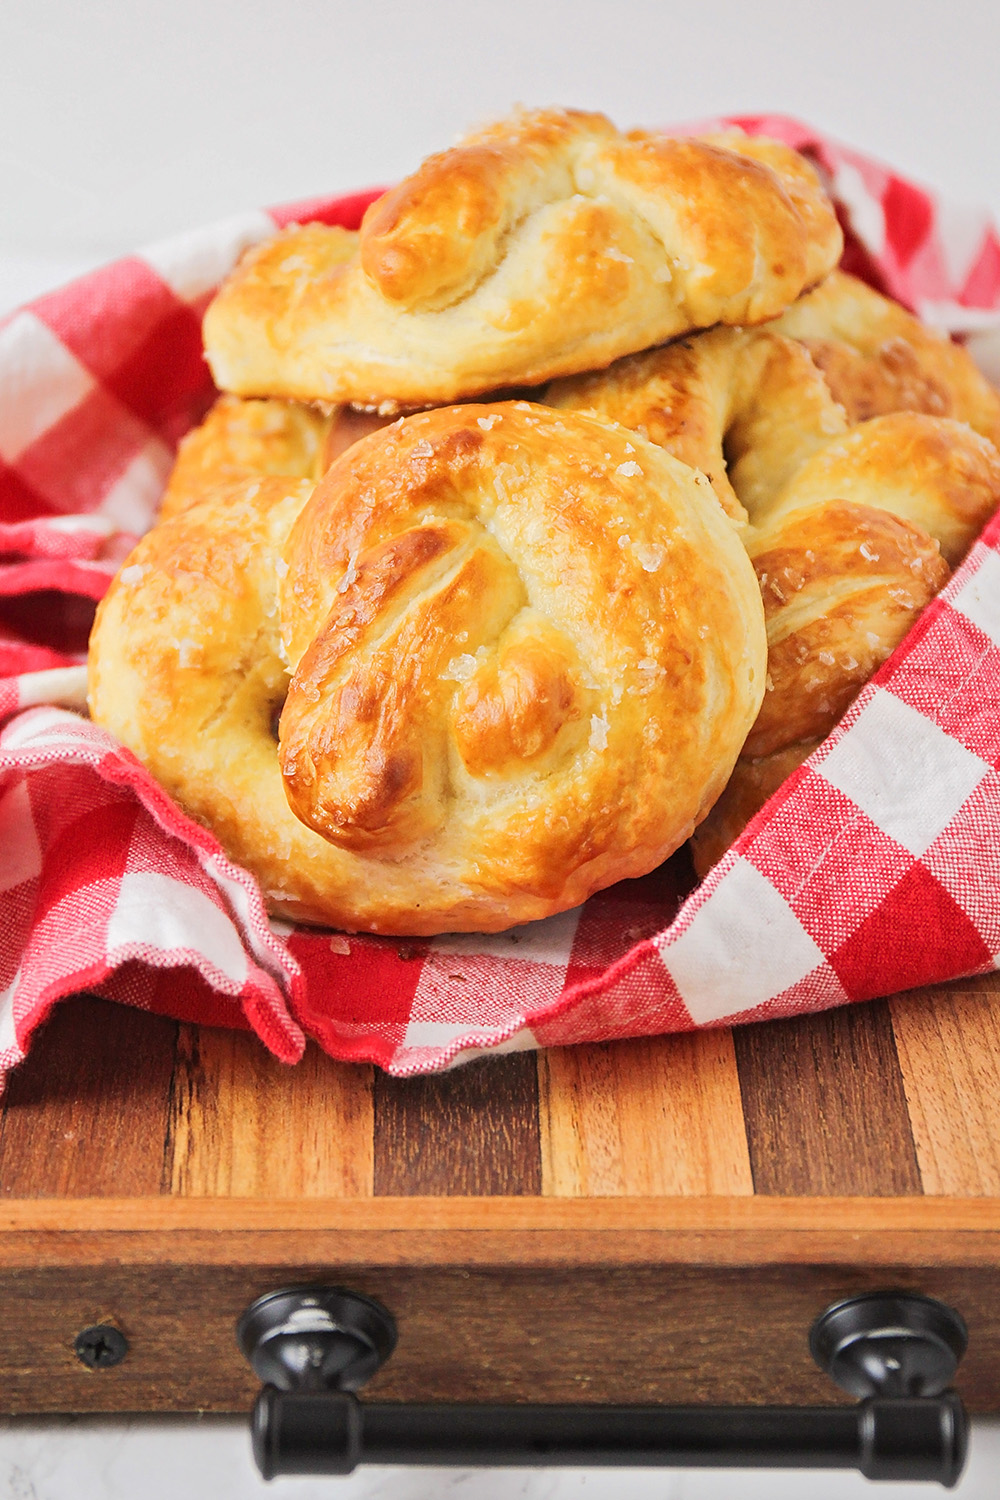 These homemade soft pretzels are just as delicious as the pretzels from the mall, and so fun to make!